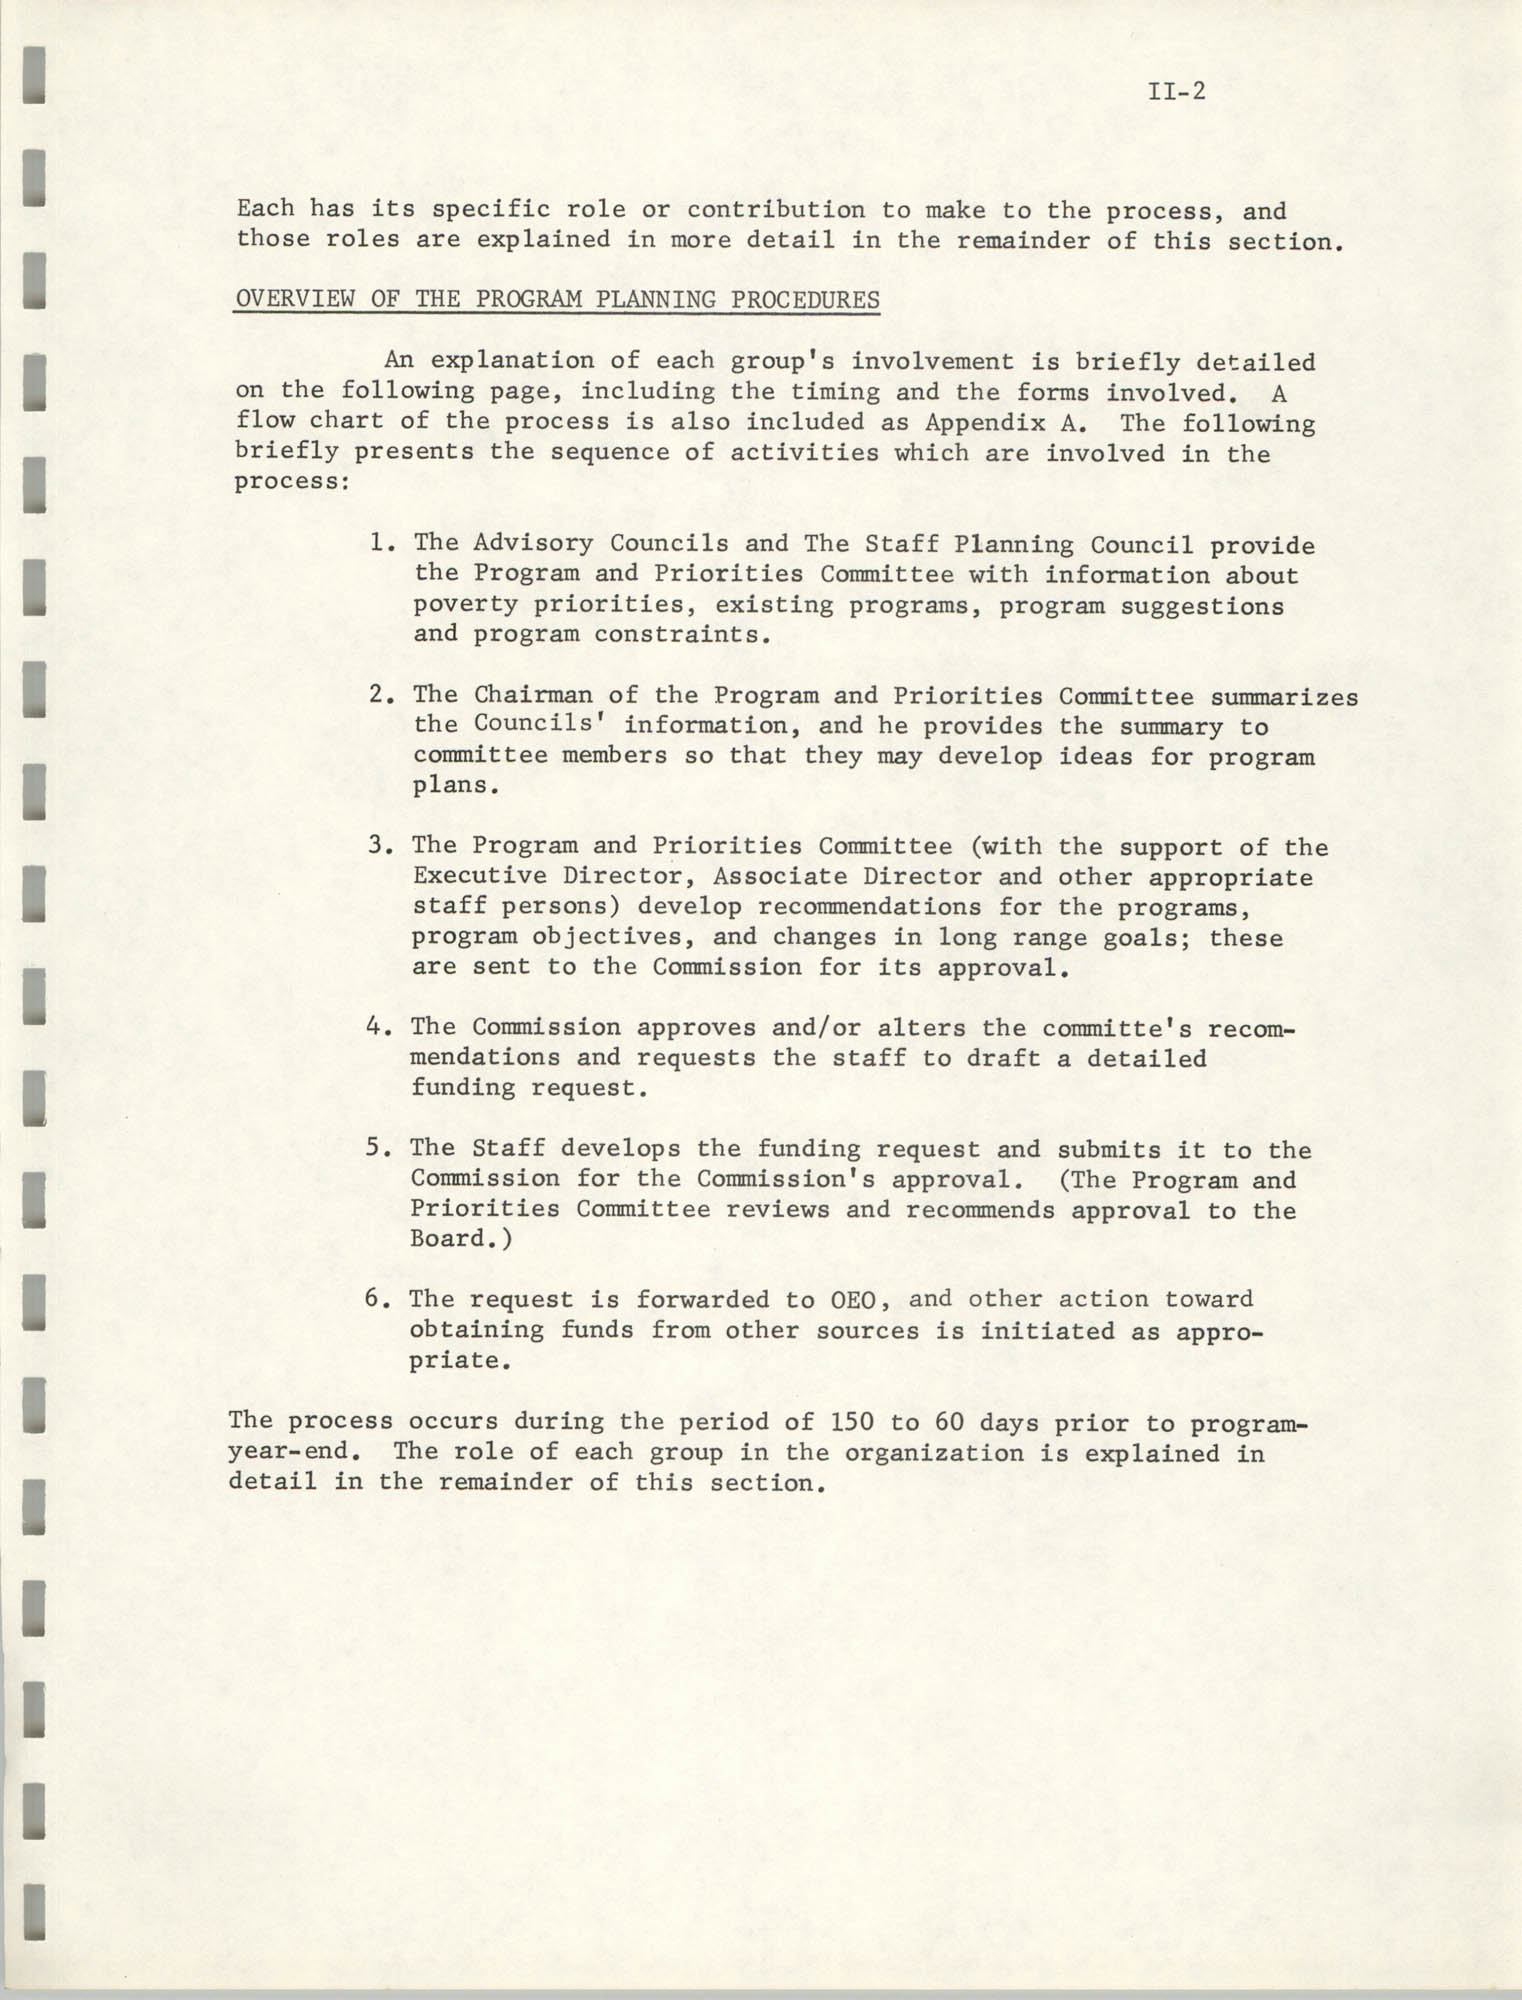 Program Planning and Control Procedures Guide for South Carolina Commission for Farm Workers, Inc., Page II-2